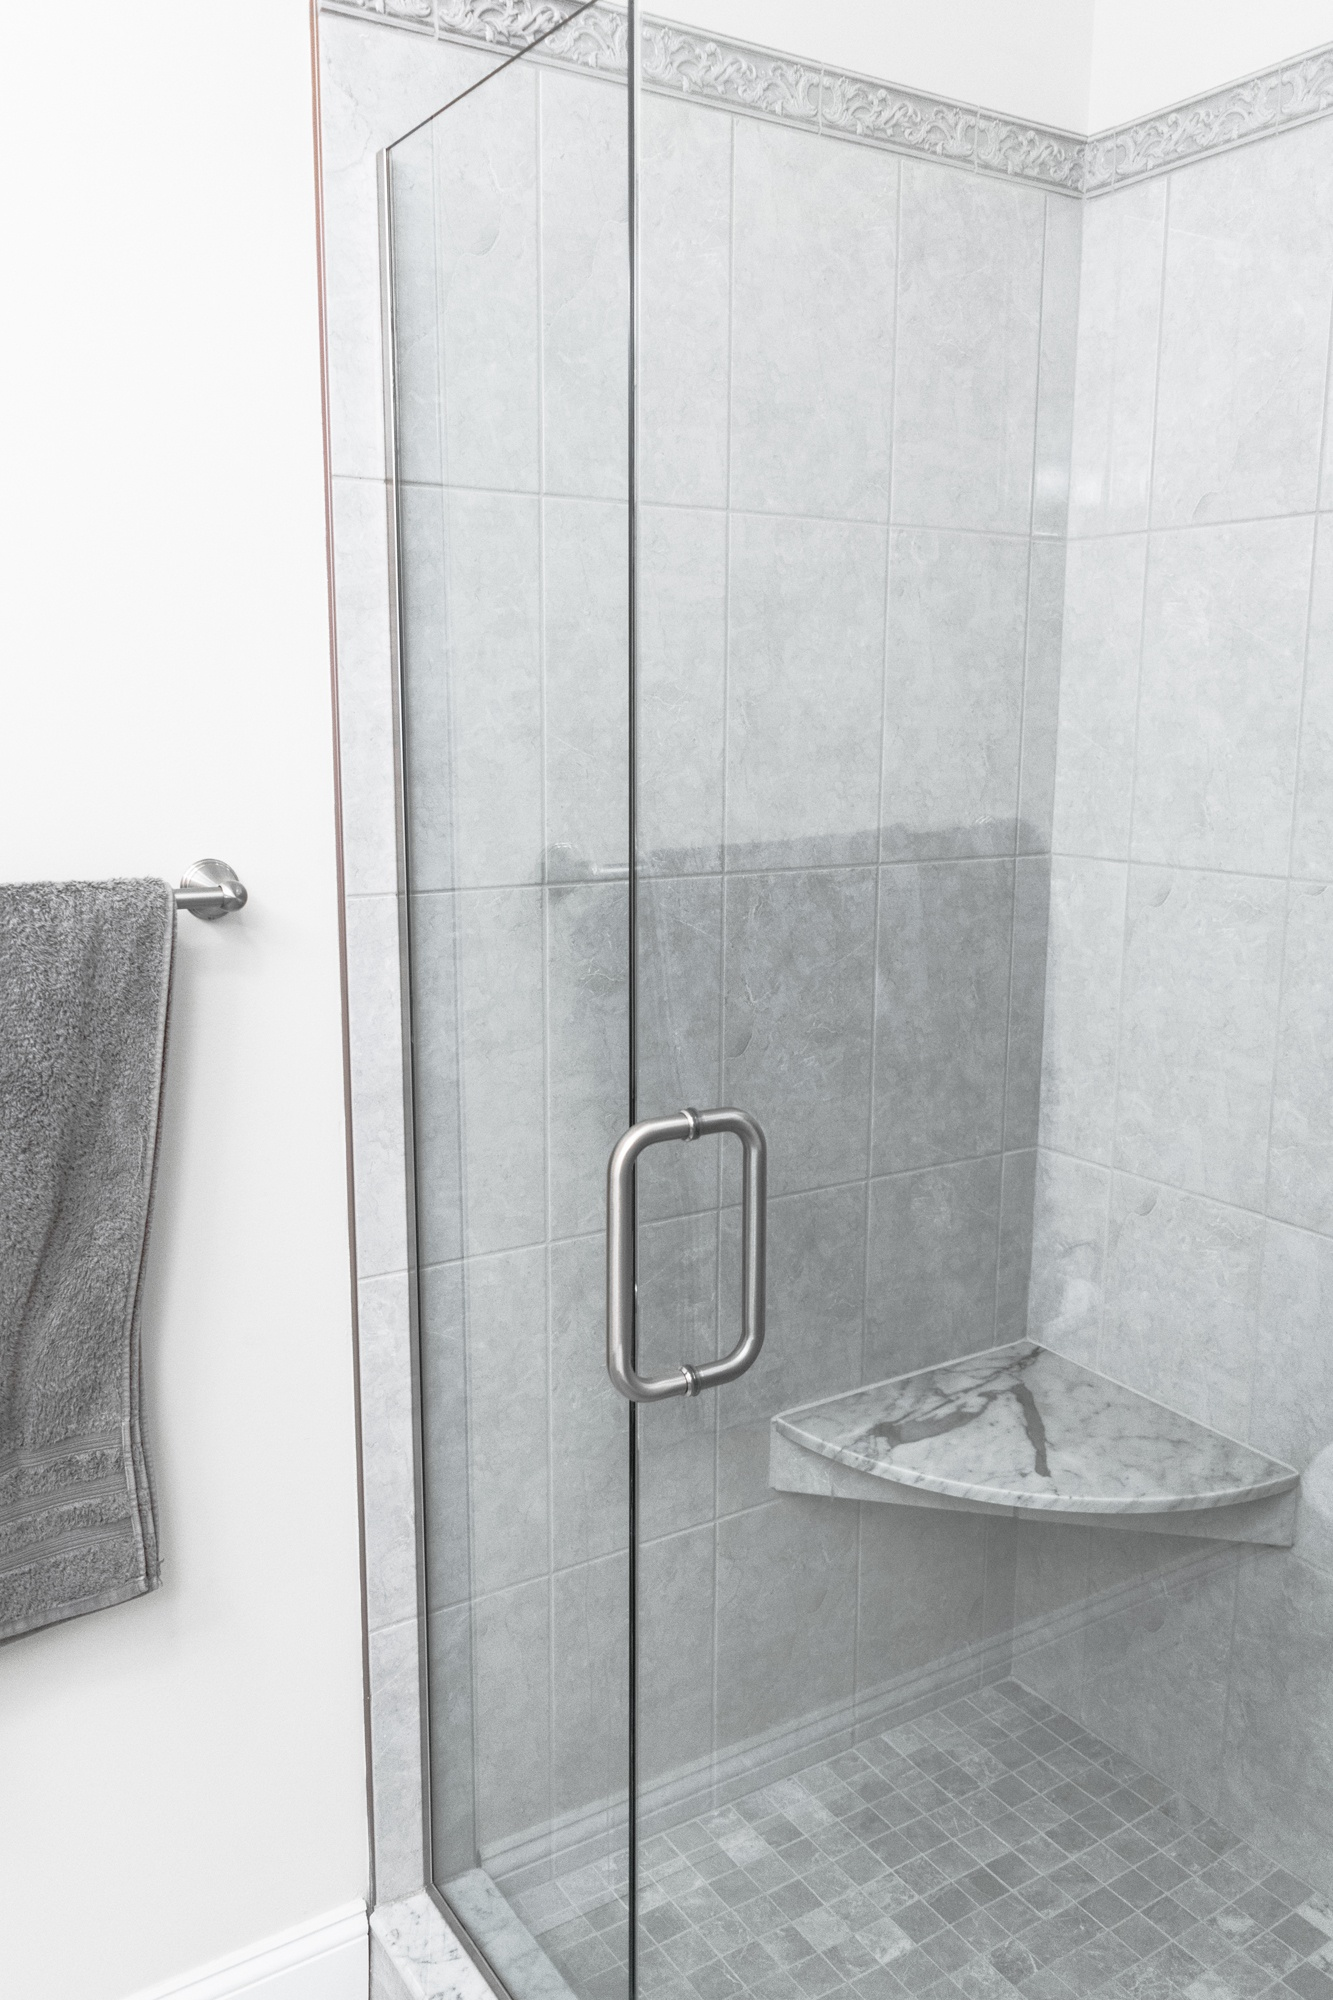 3 Options for What to Use Besides Bullnose Tile